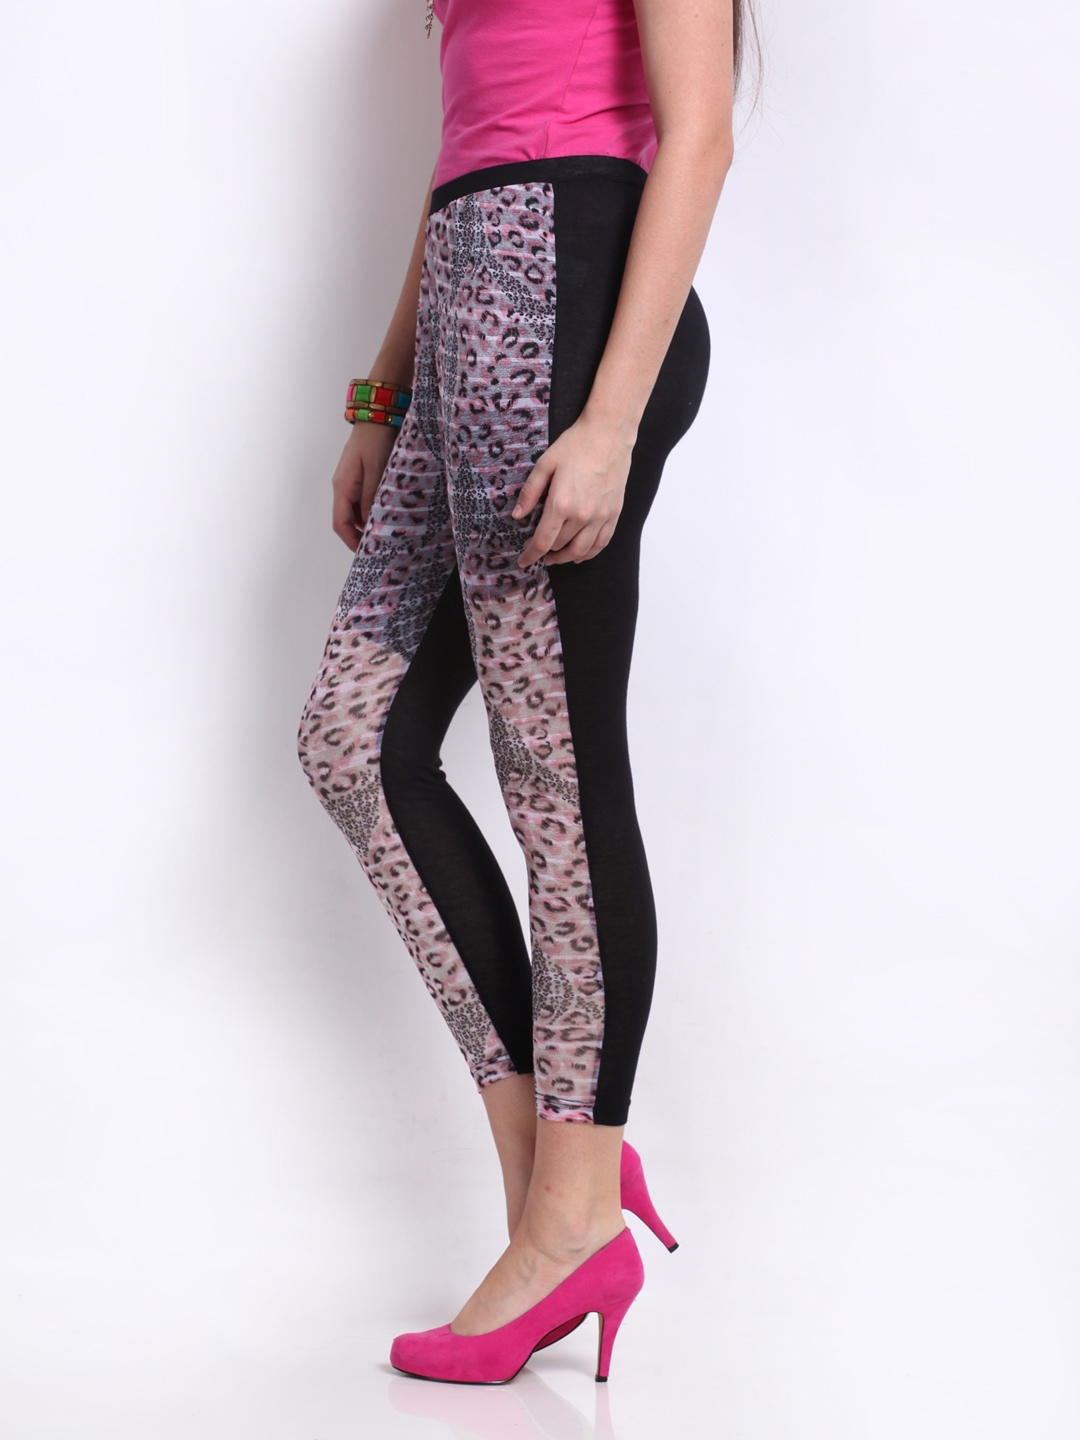 Shop a great selection of Leggings for Women at Nordstrom Rack. Find designer Leggings for Women up to 70% off and get free shipping on orders over $